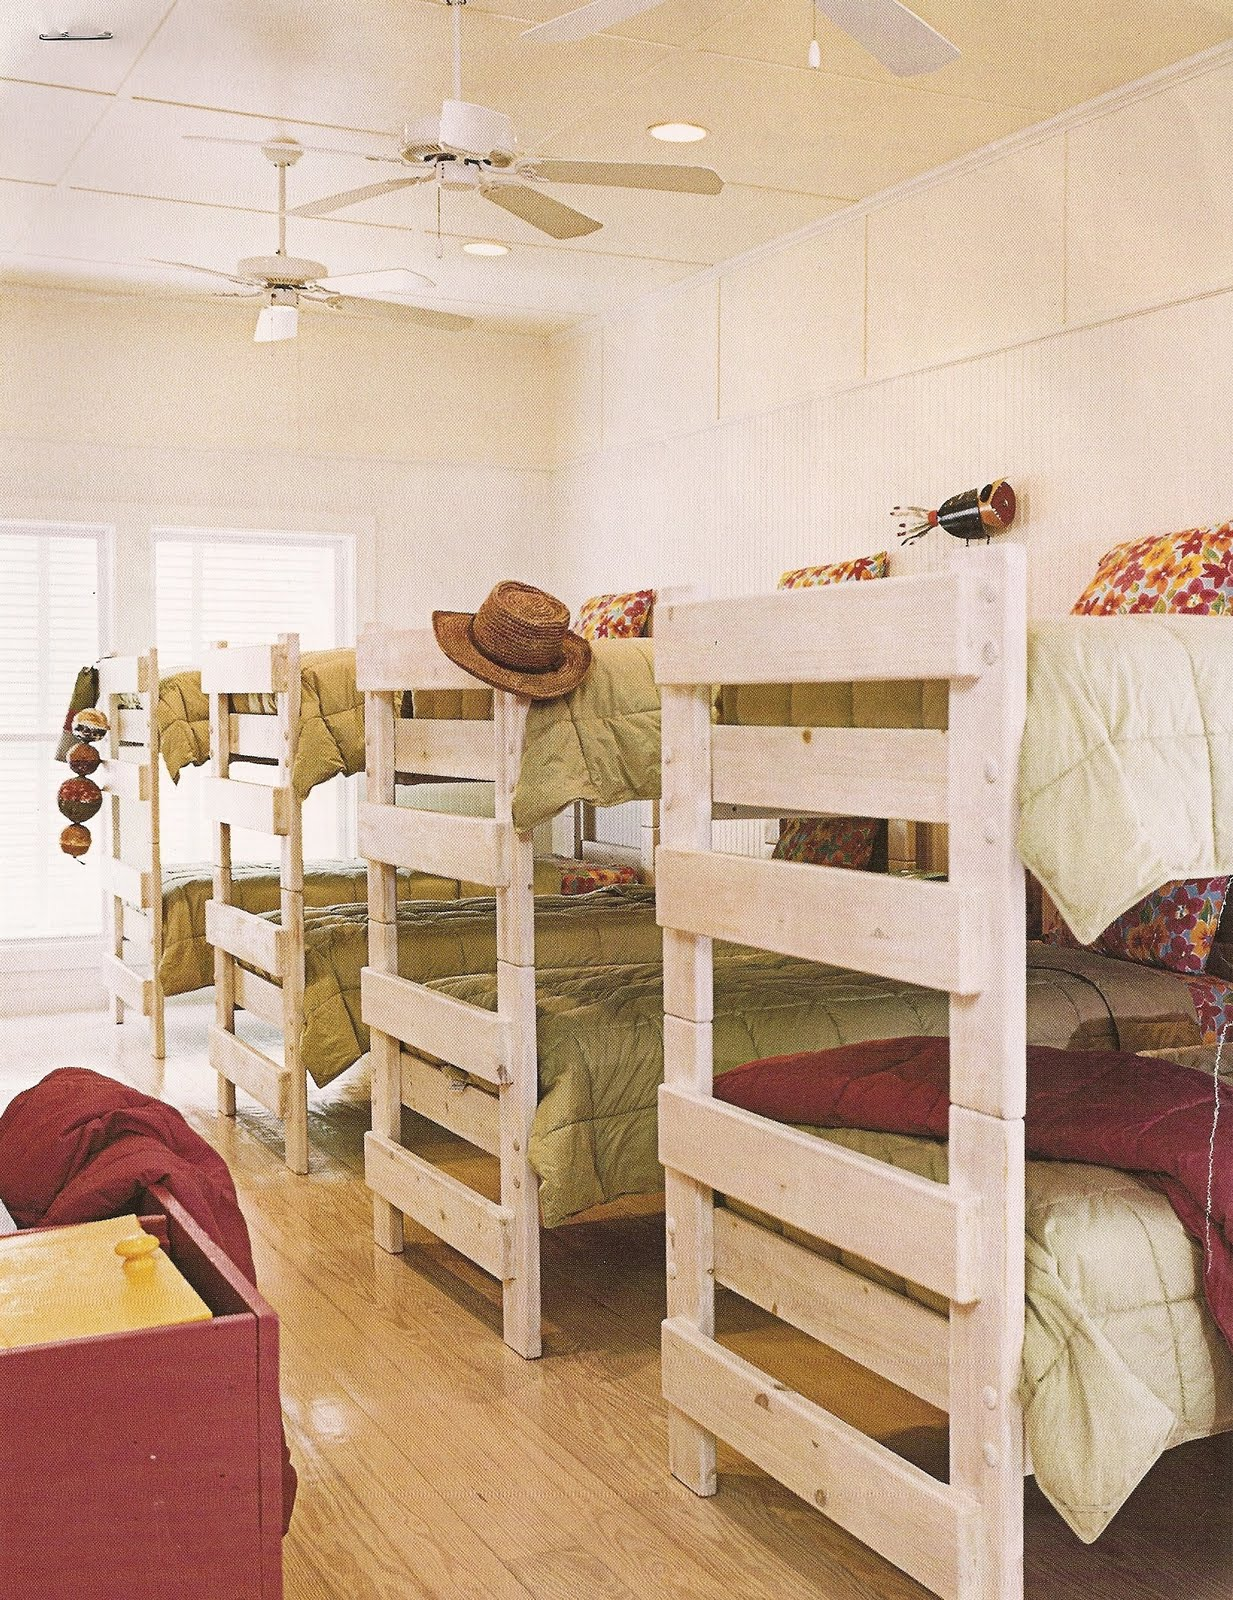 Hang It Up - Beach House Essential: Bunk Beds - Coastal Living title=